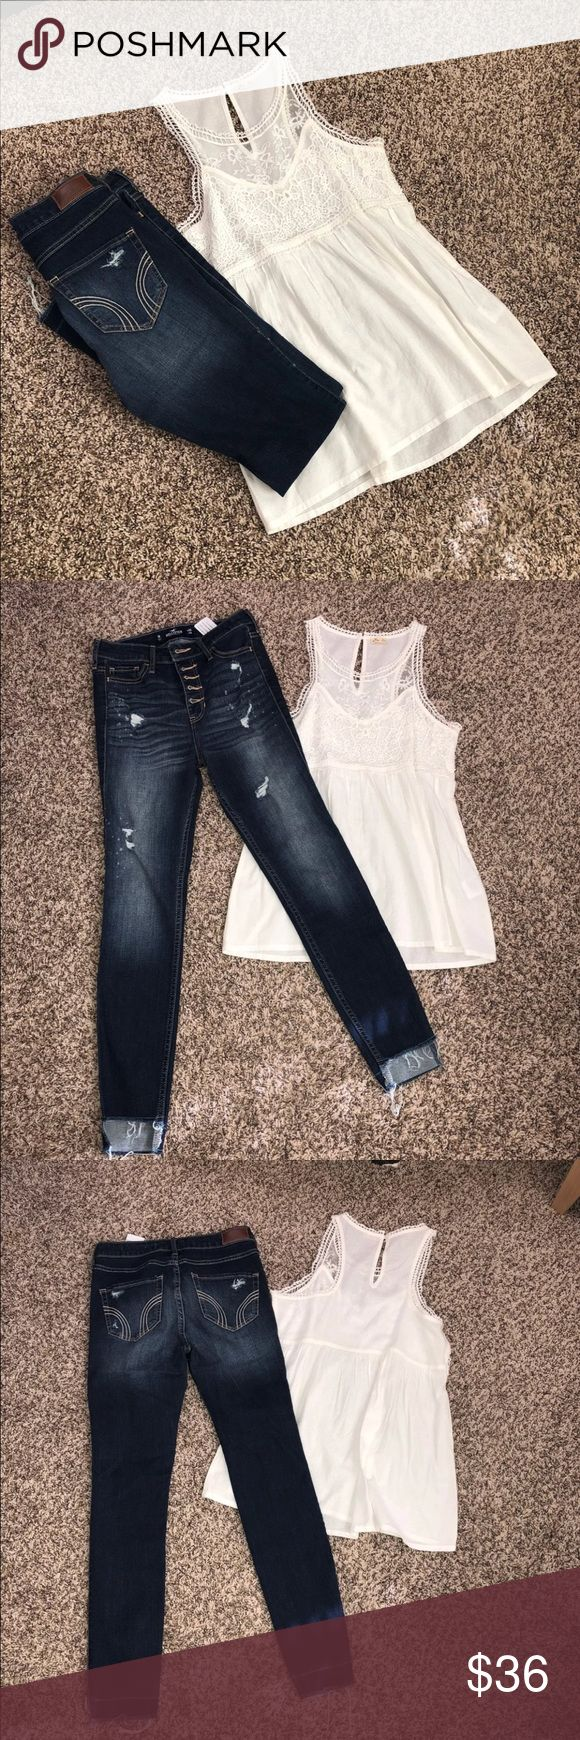 Hollister jean outfit Super cute!  Top sz XS- never worn but washed- tag did come loose on 1end High rise super skinny destructive crop jeans- never worn Hollister Jeans Ankle & Cropped